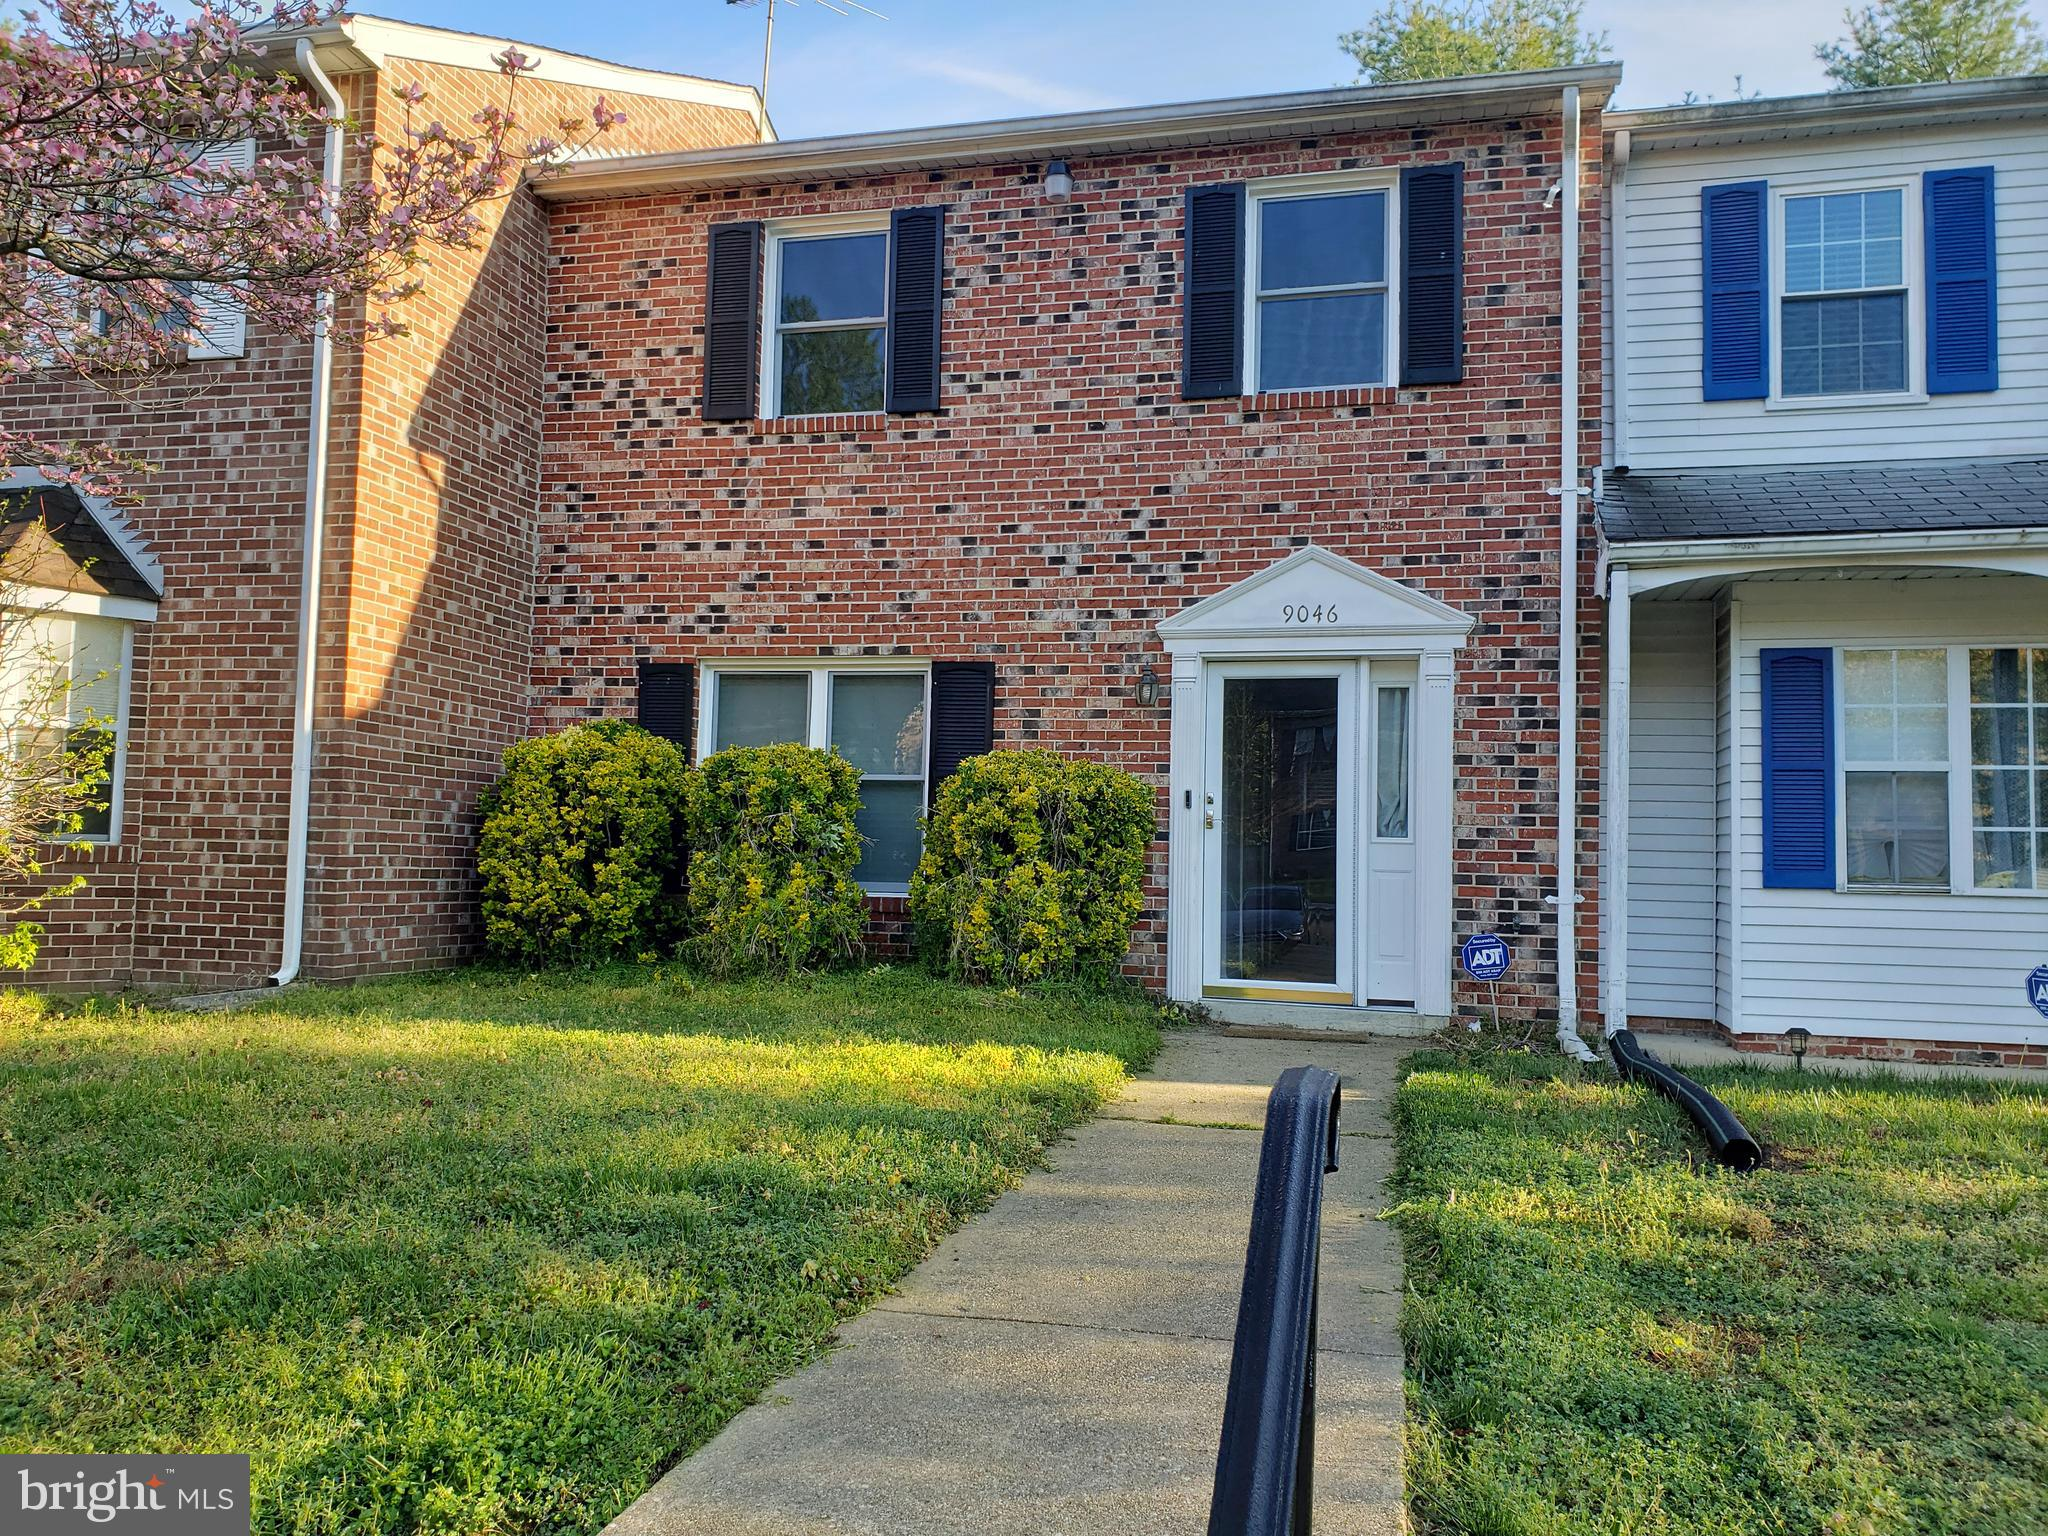 Welcome to Marlton! This 2 bedrooms, 1.5 baths townhouse is located in the much desired community of